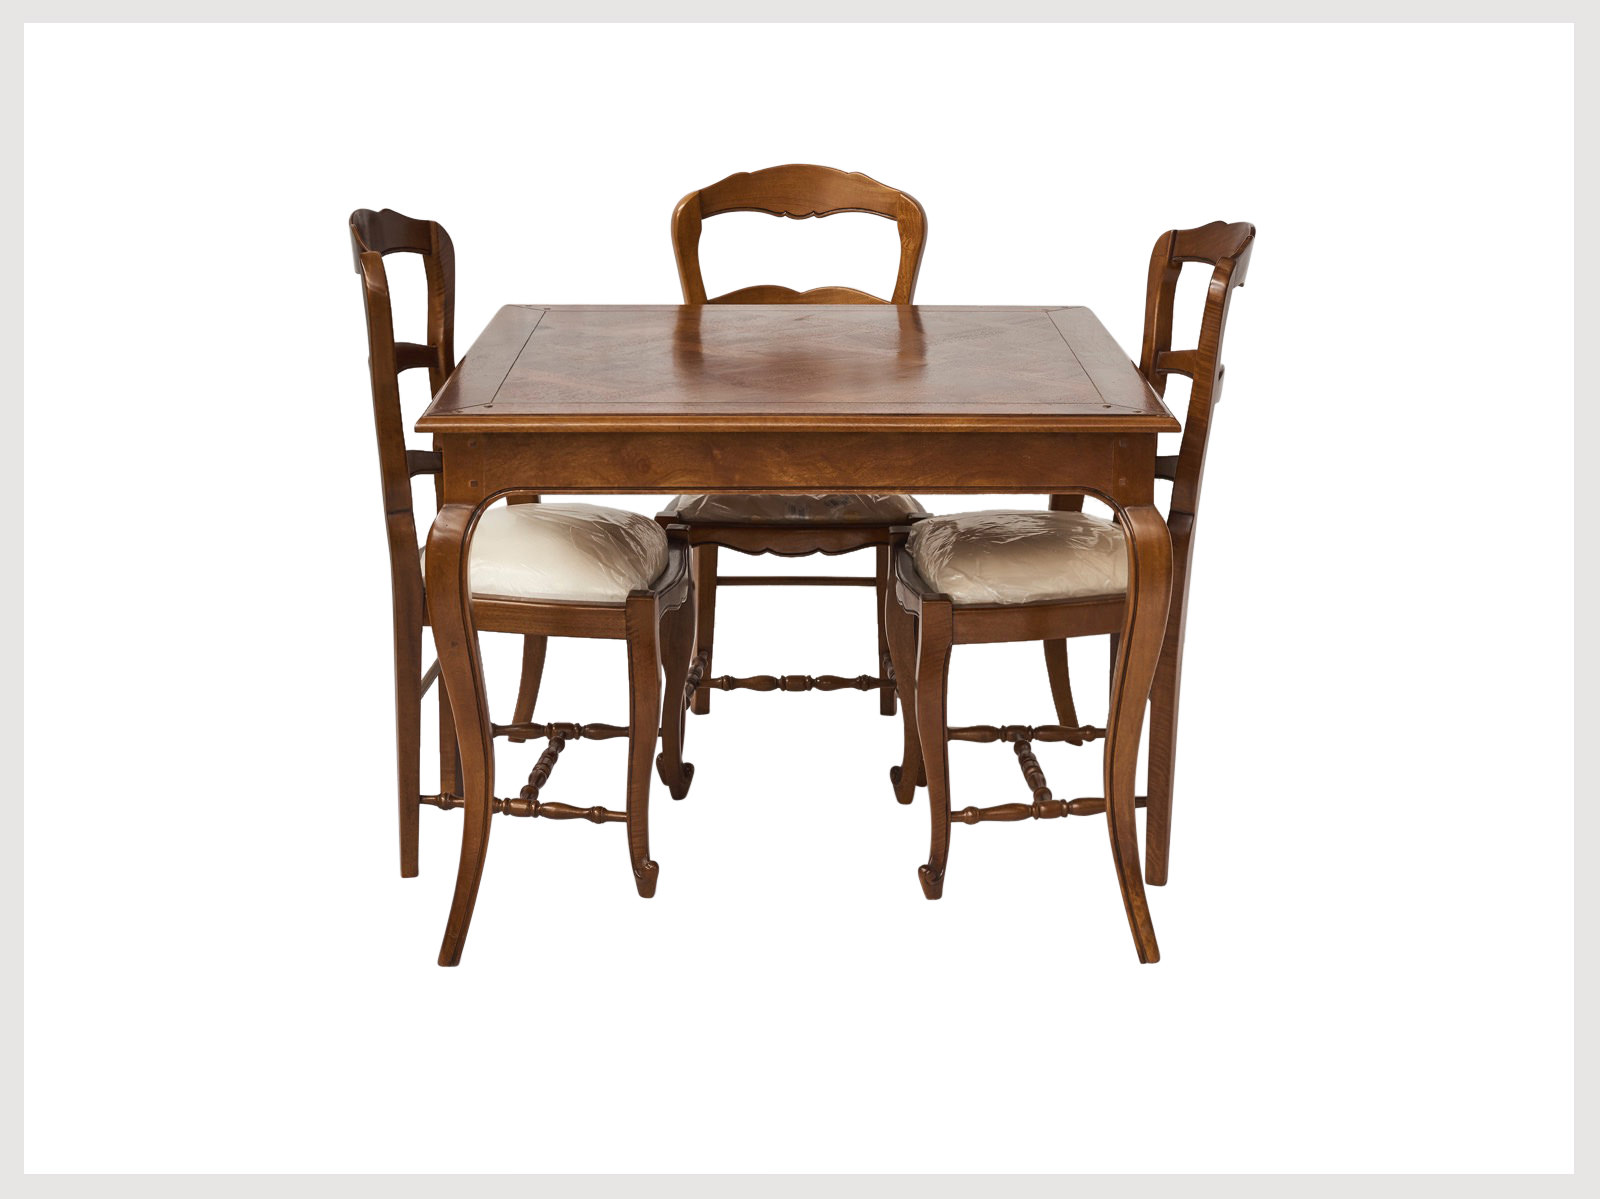 French Provincial Style 4 Seater Square Dining Table In